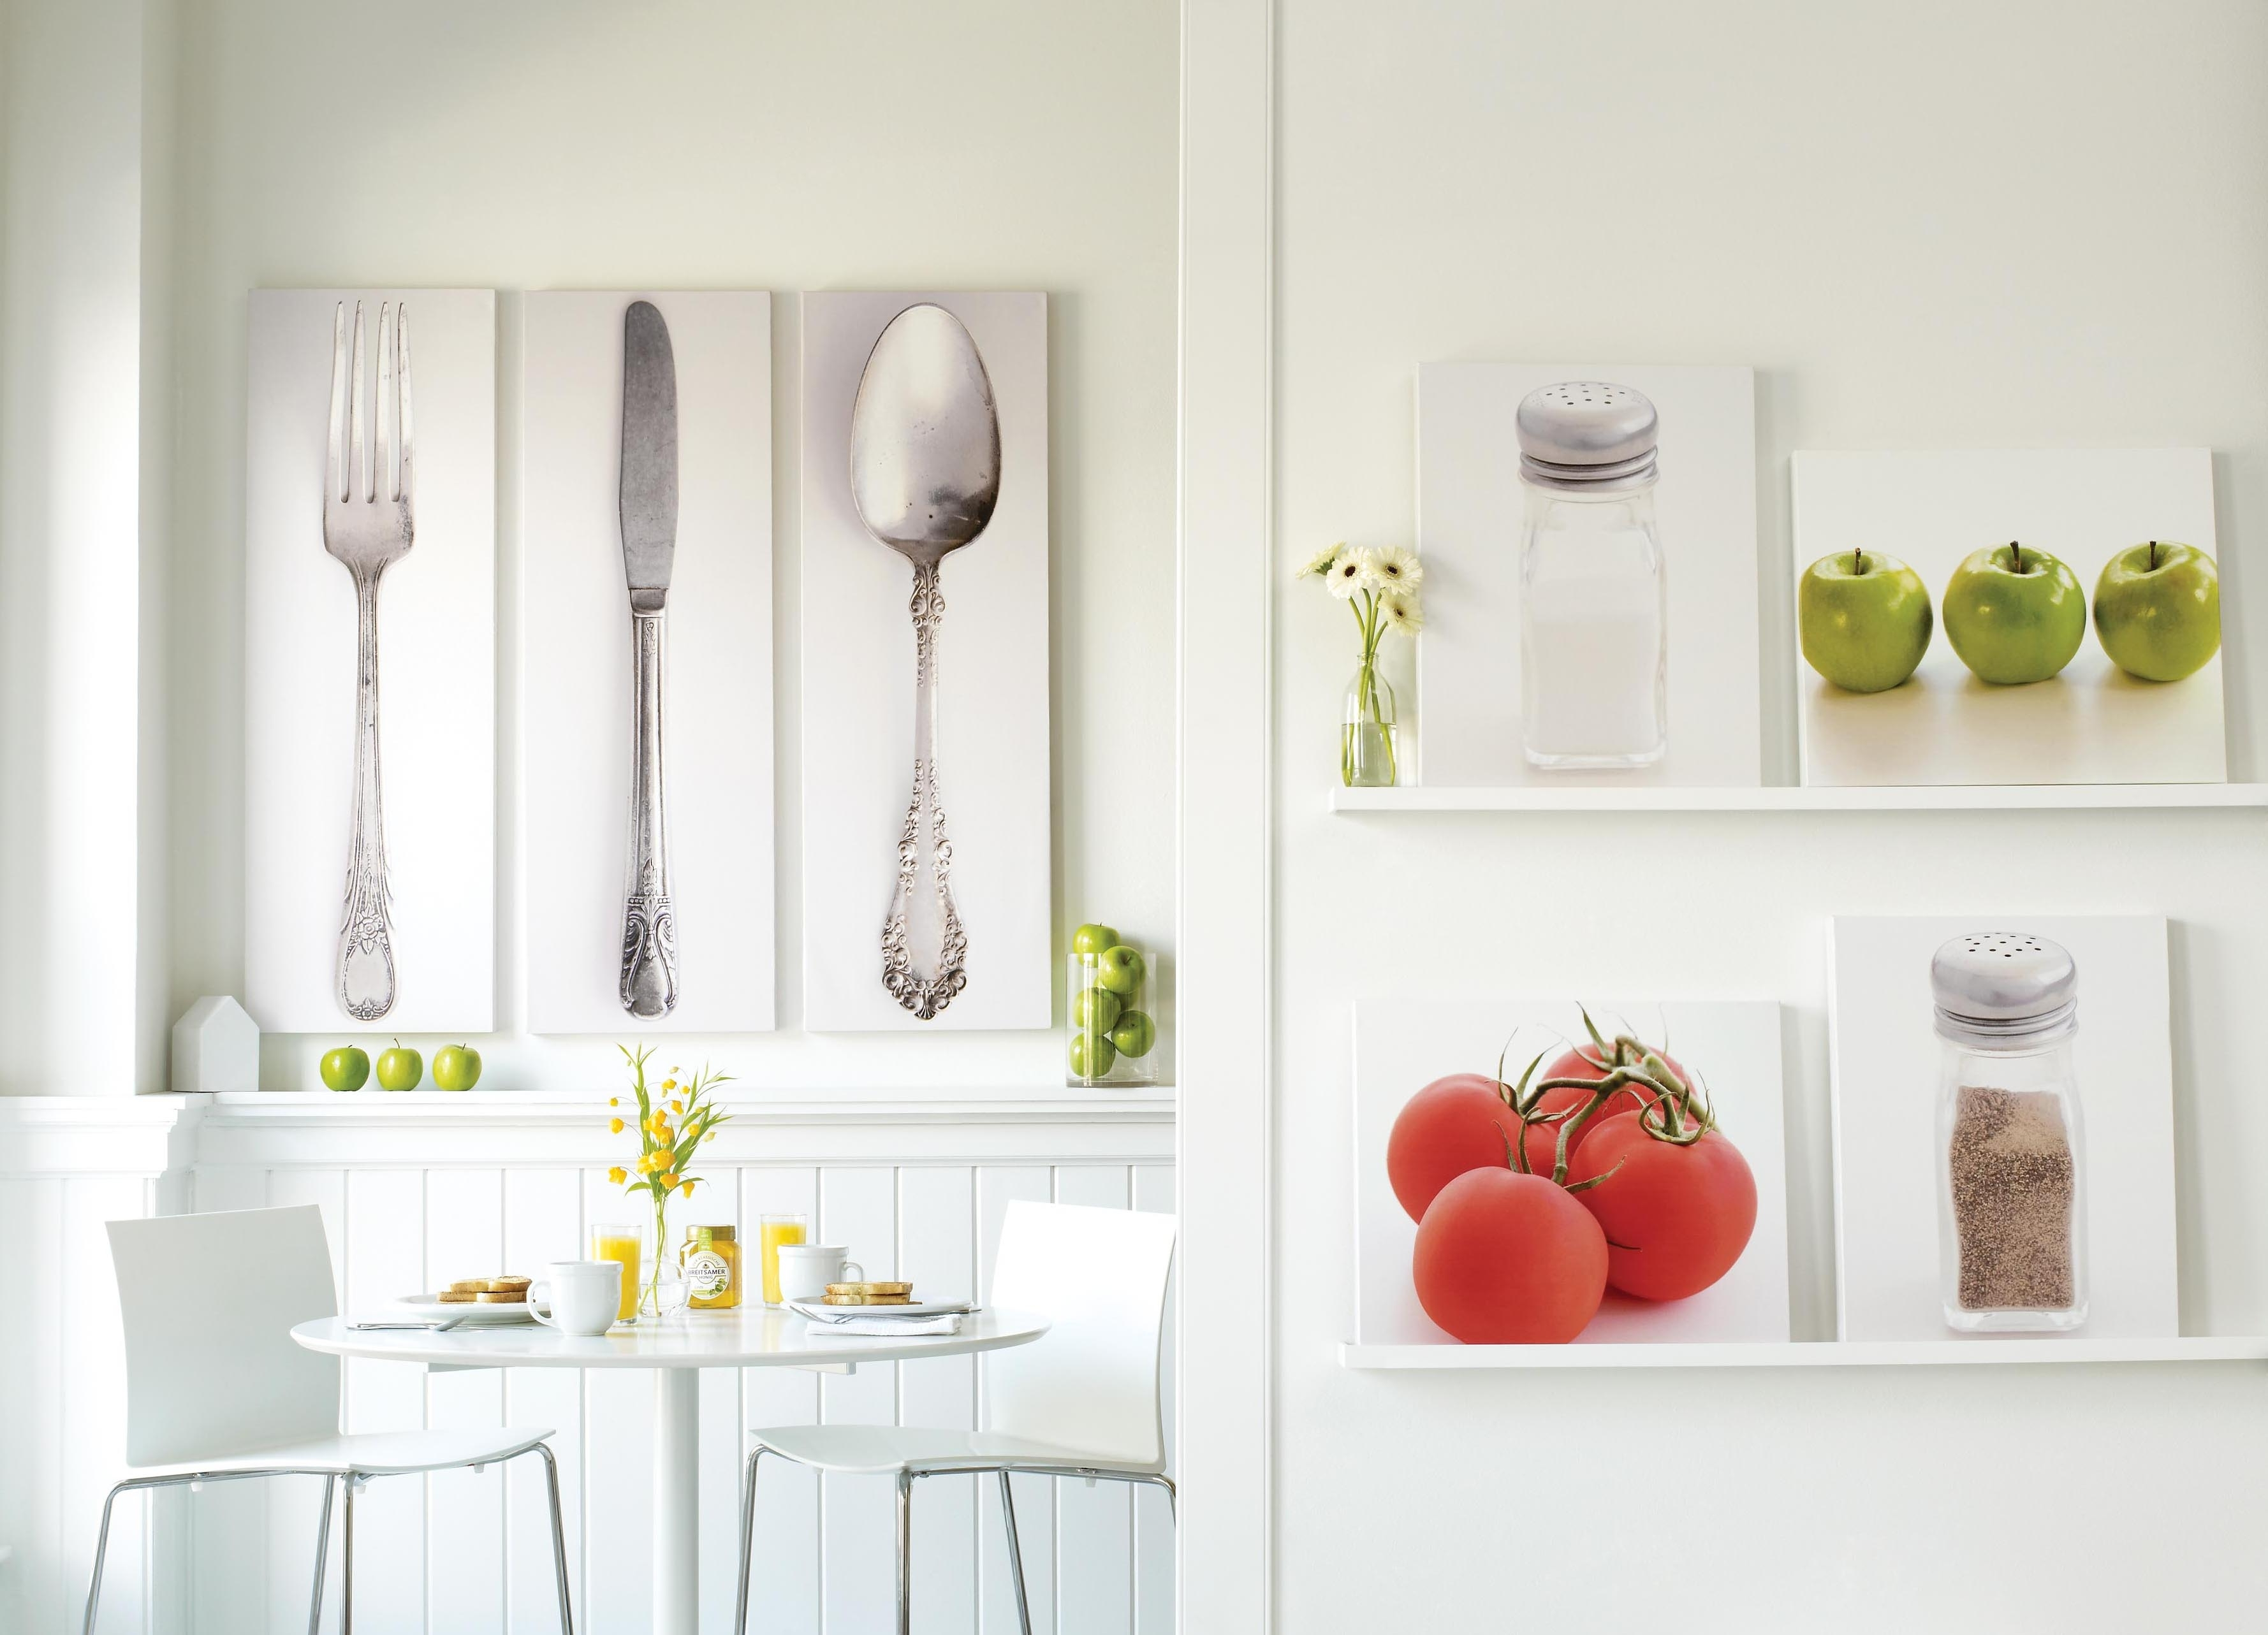 Wondrous Knife,spoon And Fork Pictures As Kitchen Wall Decor In Pertaining To 2018 Modern Wall Art Decors (View 14 of 20)